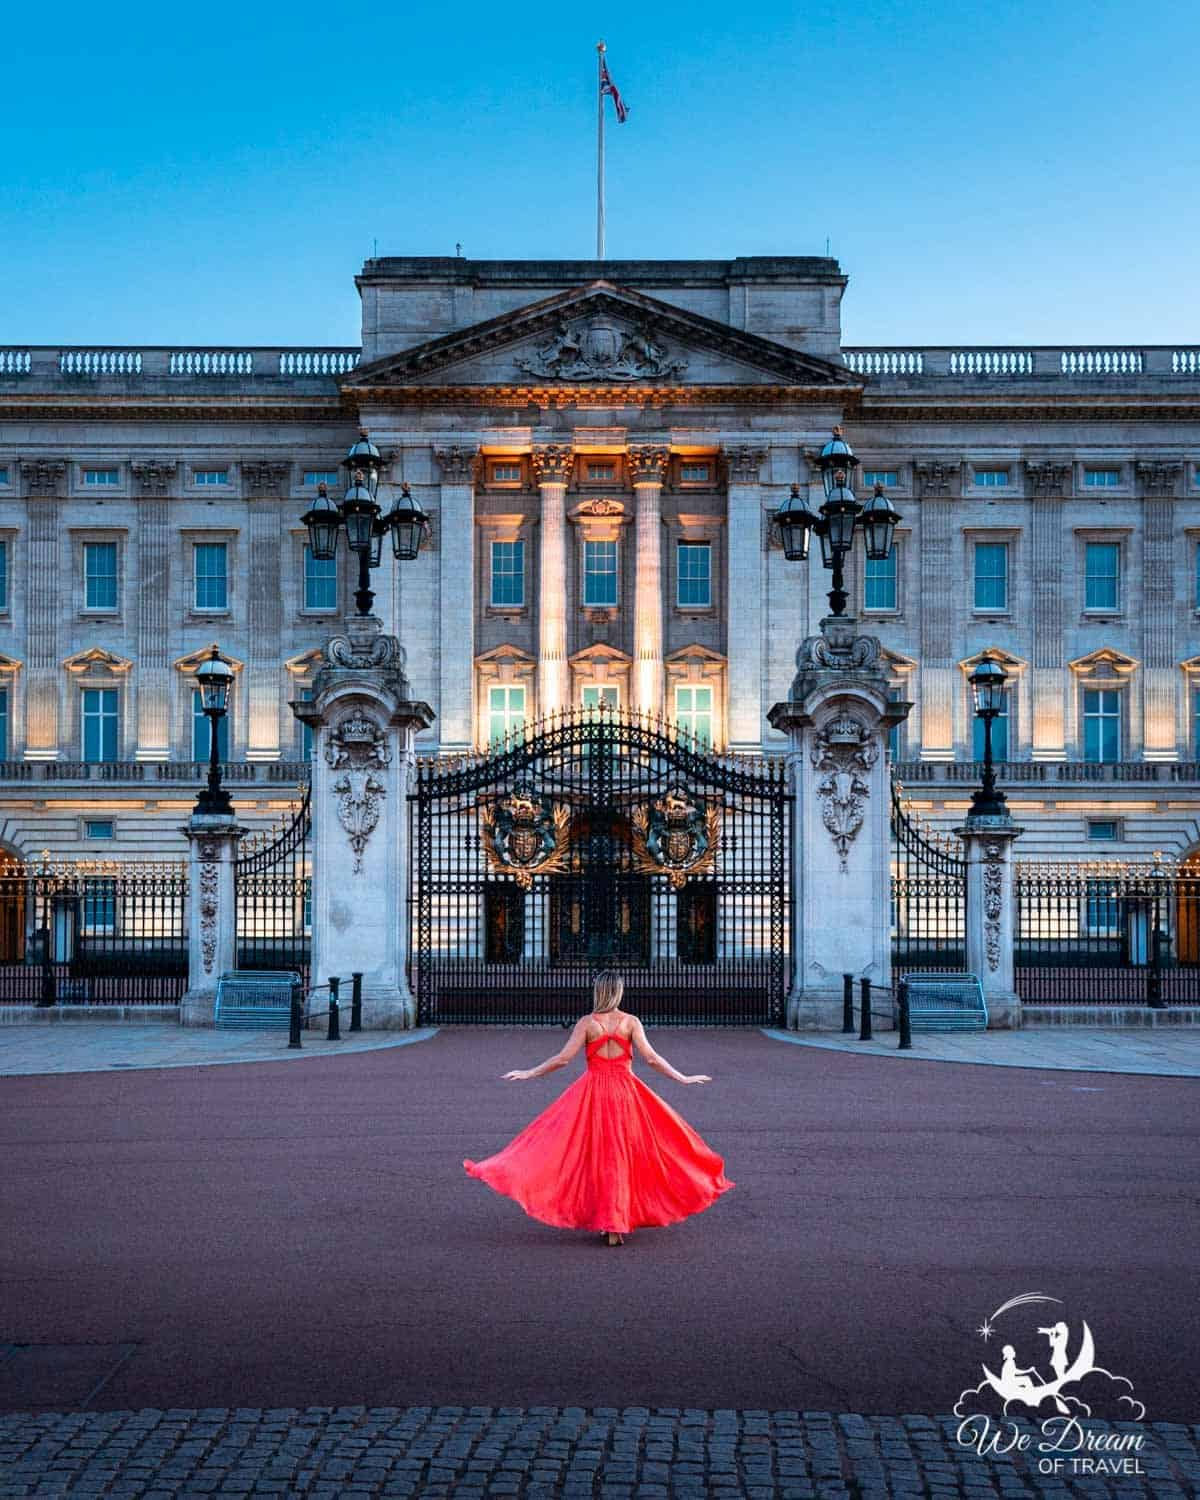 Pretending to be a princess in front of Buckingham Palace London, one of London's most famous landmarks